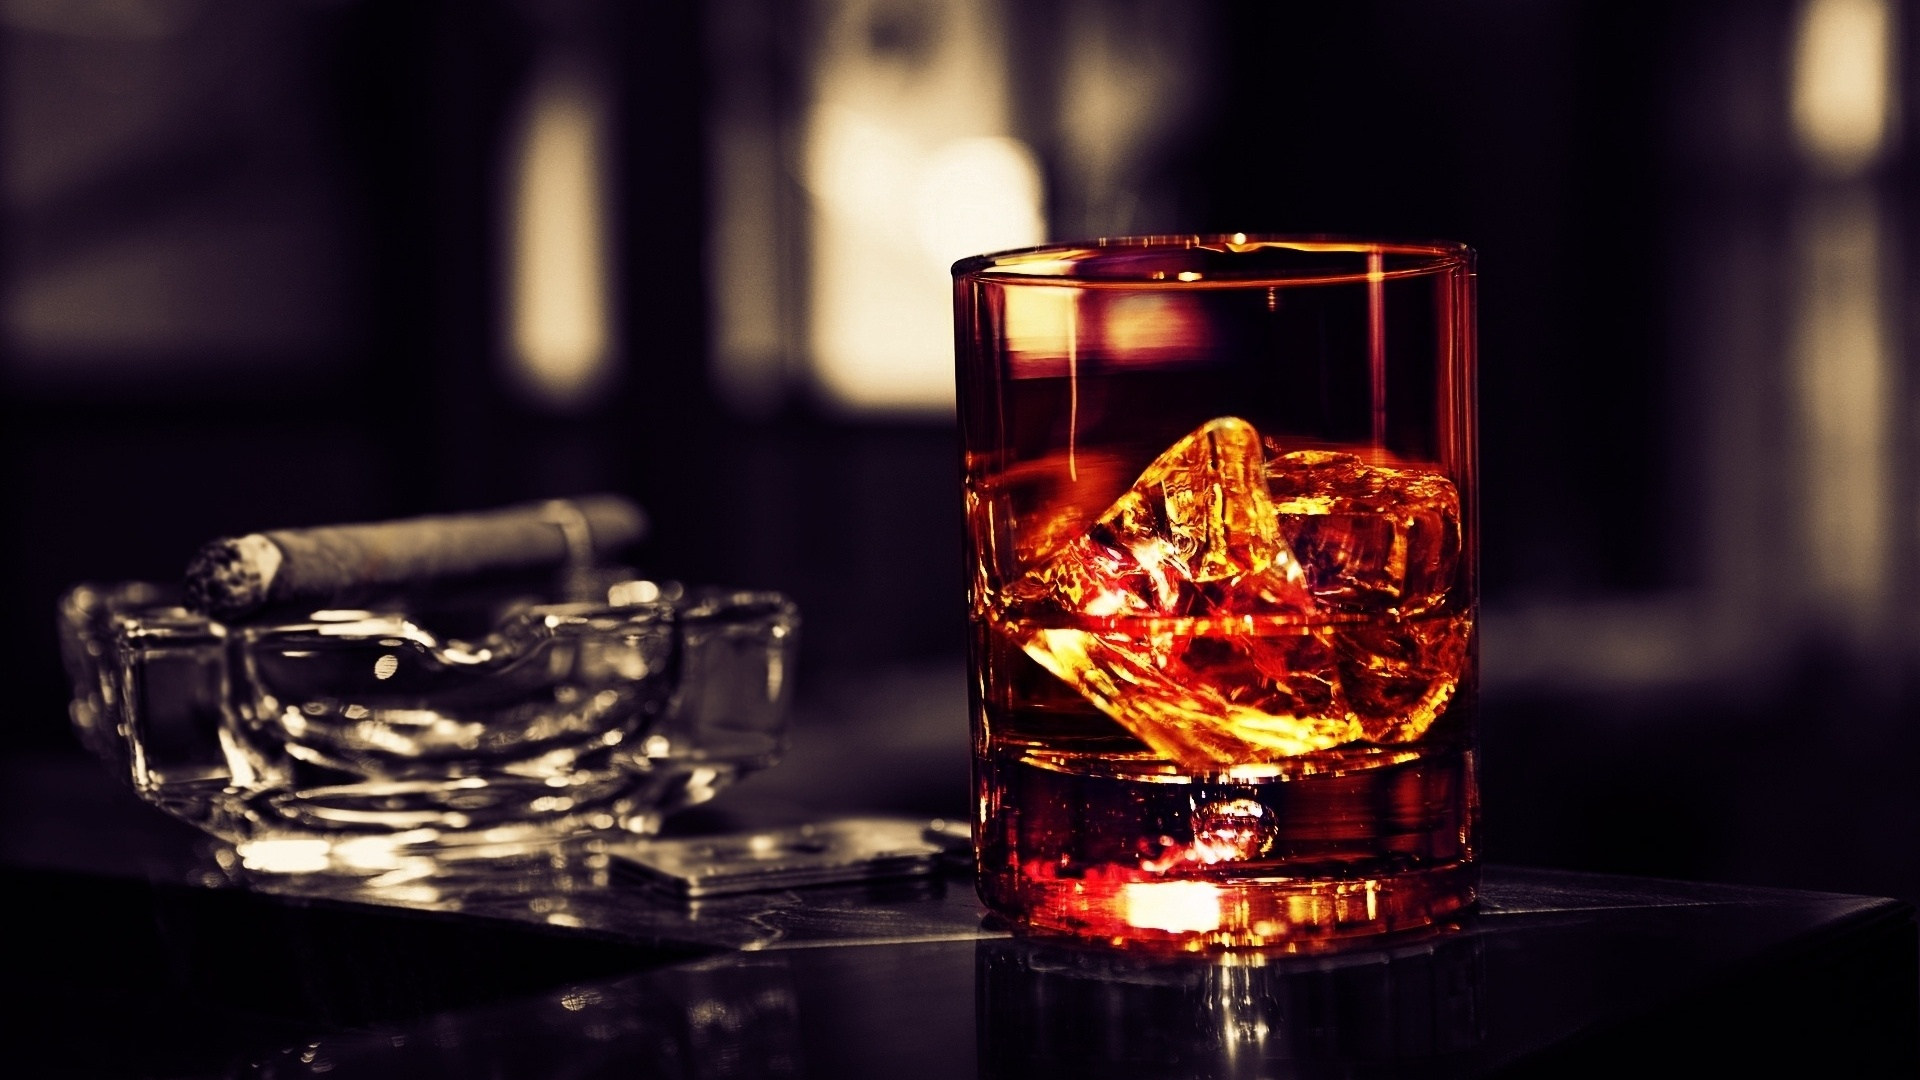 whisky 1080p wallpapers hd - photo #7